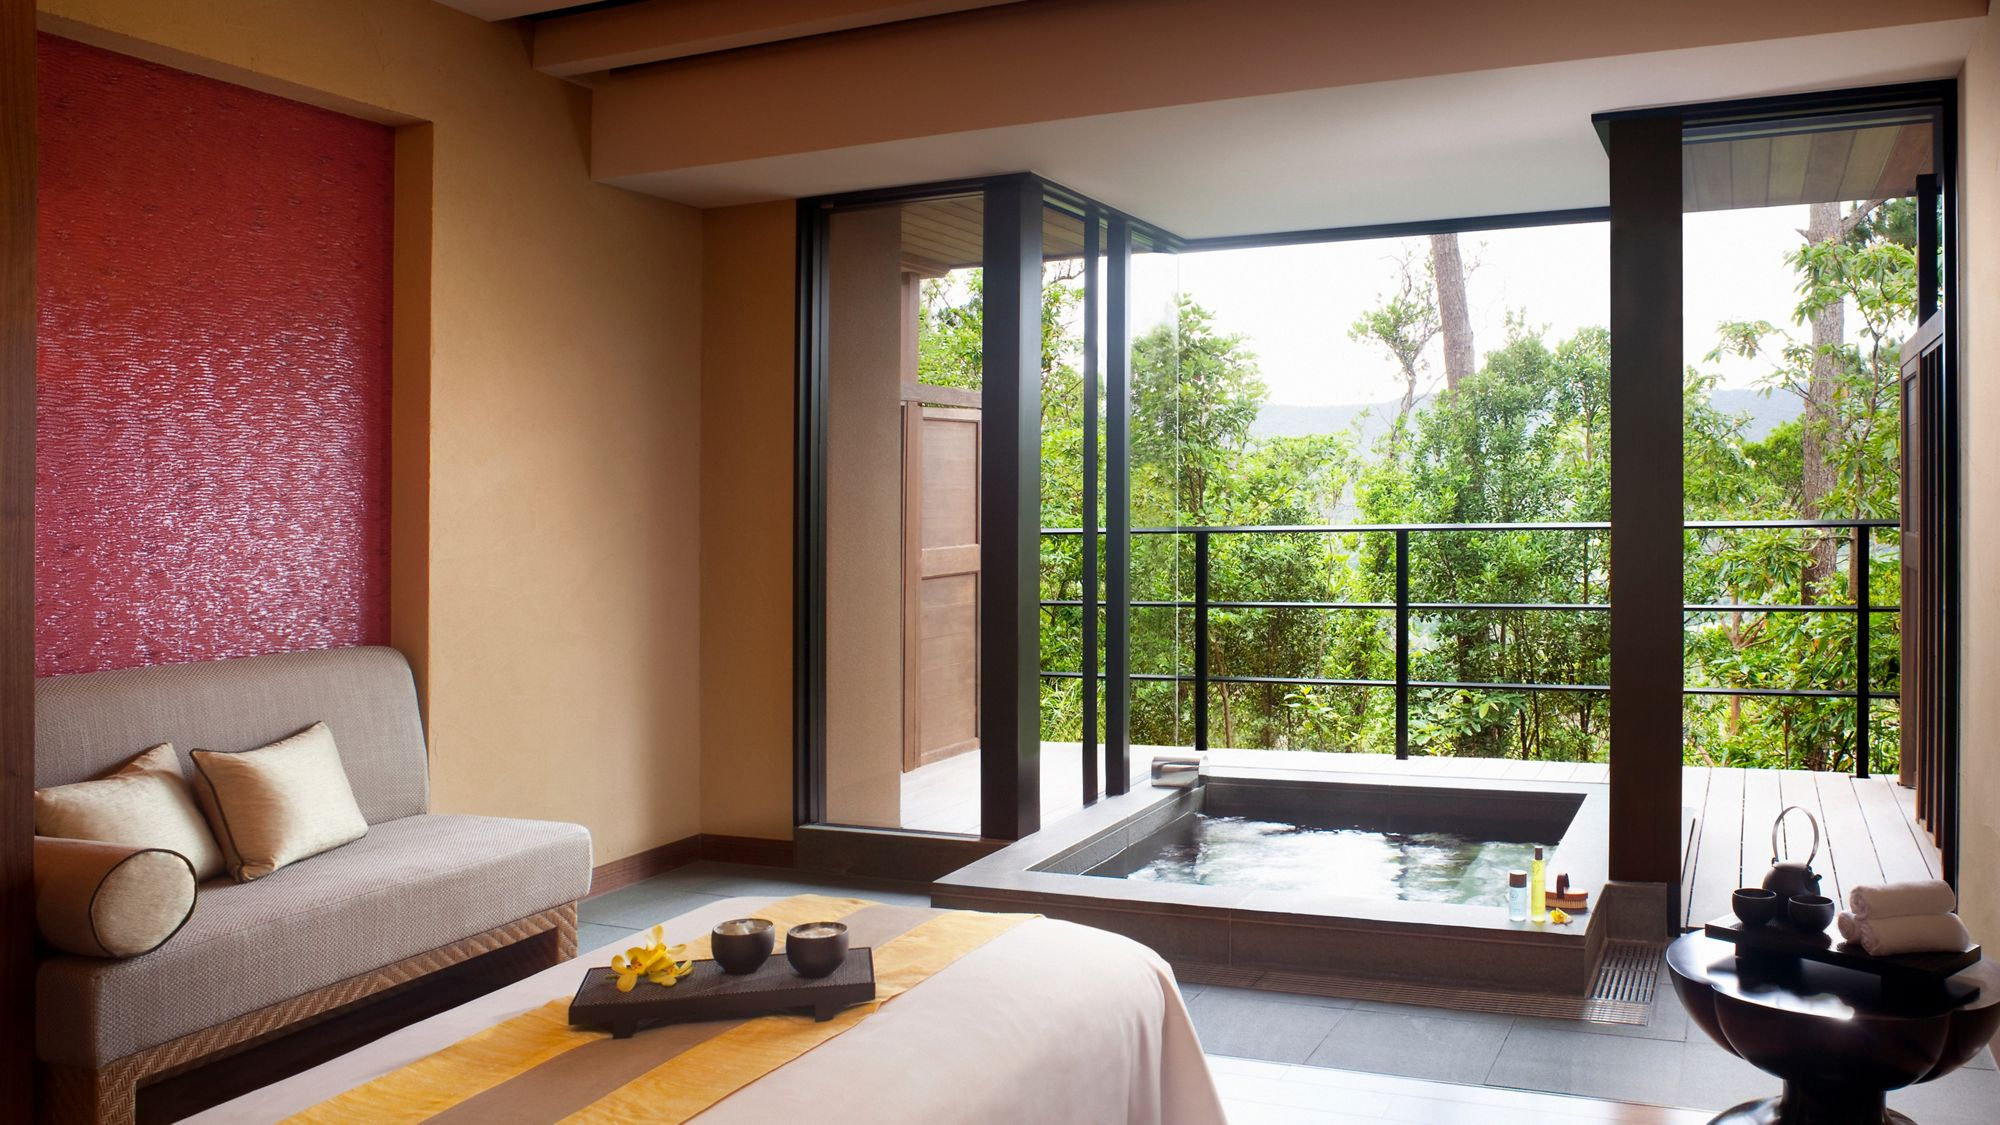 Spa treatment room with floor-to-ceiling windows and a private whirlpool